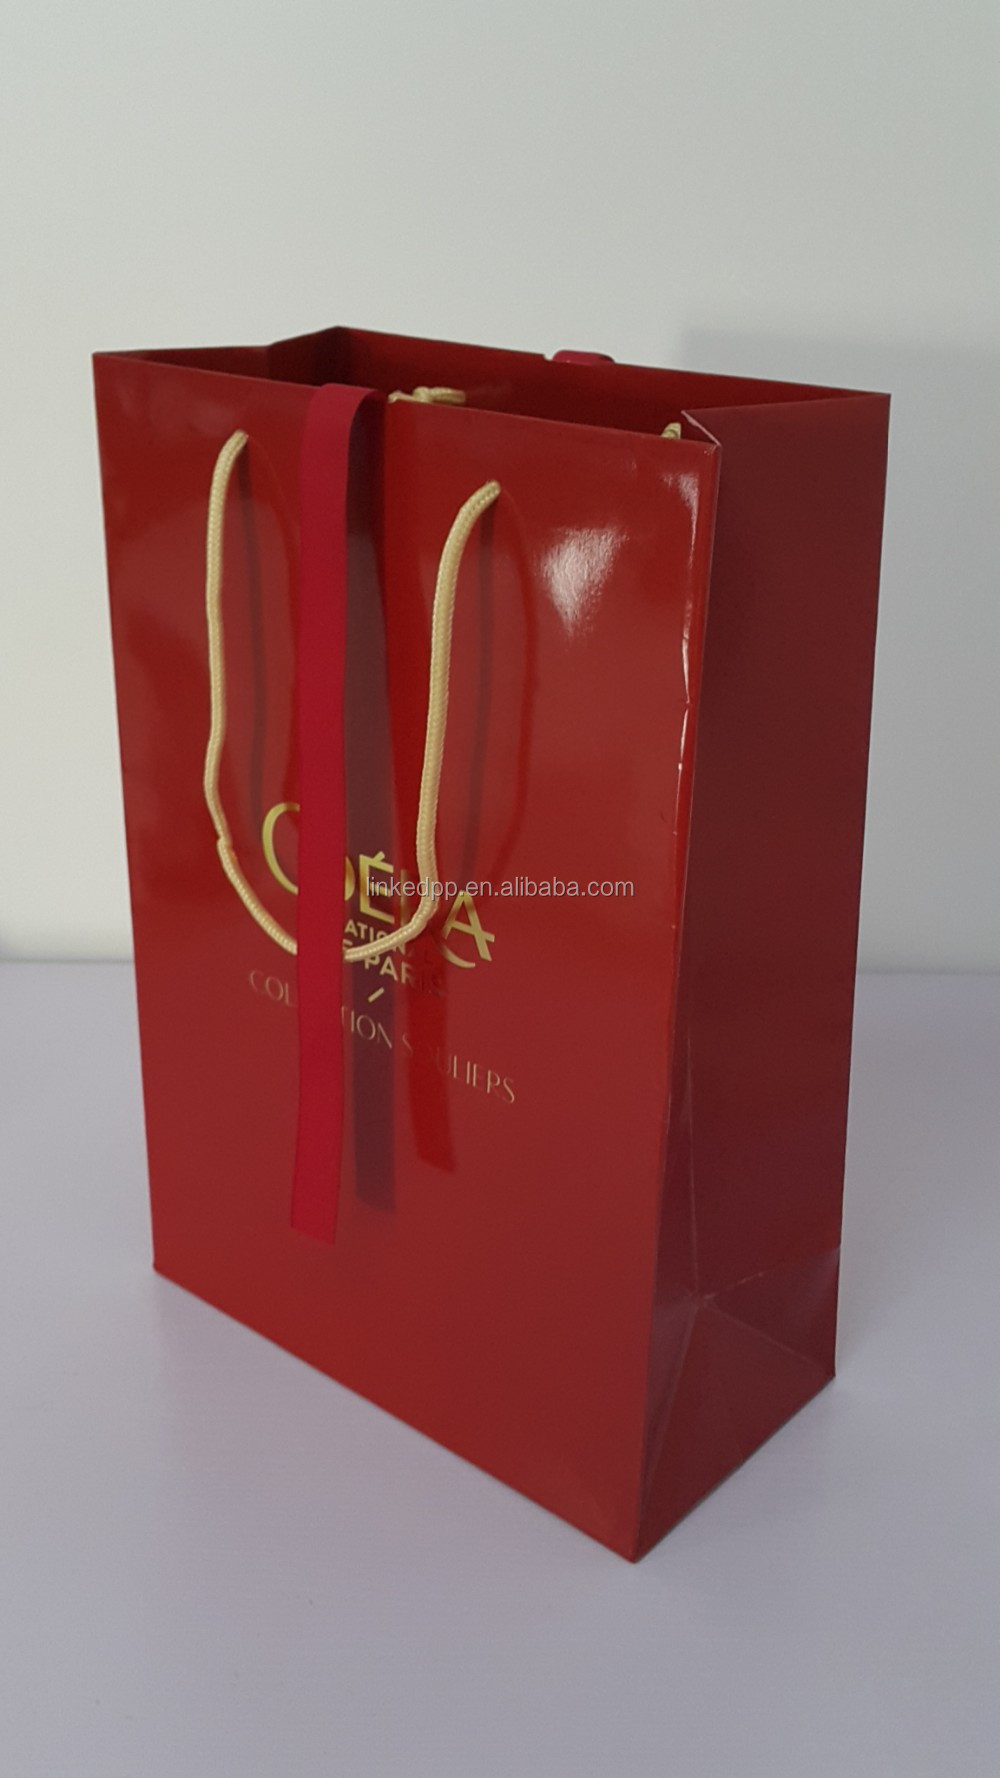 Glossy paper gift bag with rope handle and ribbon bow tie